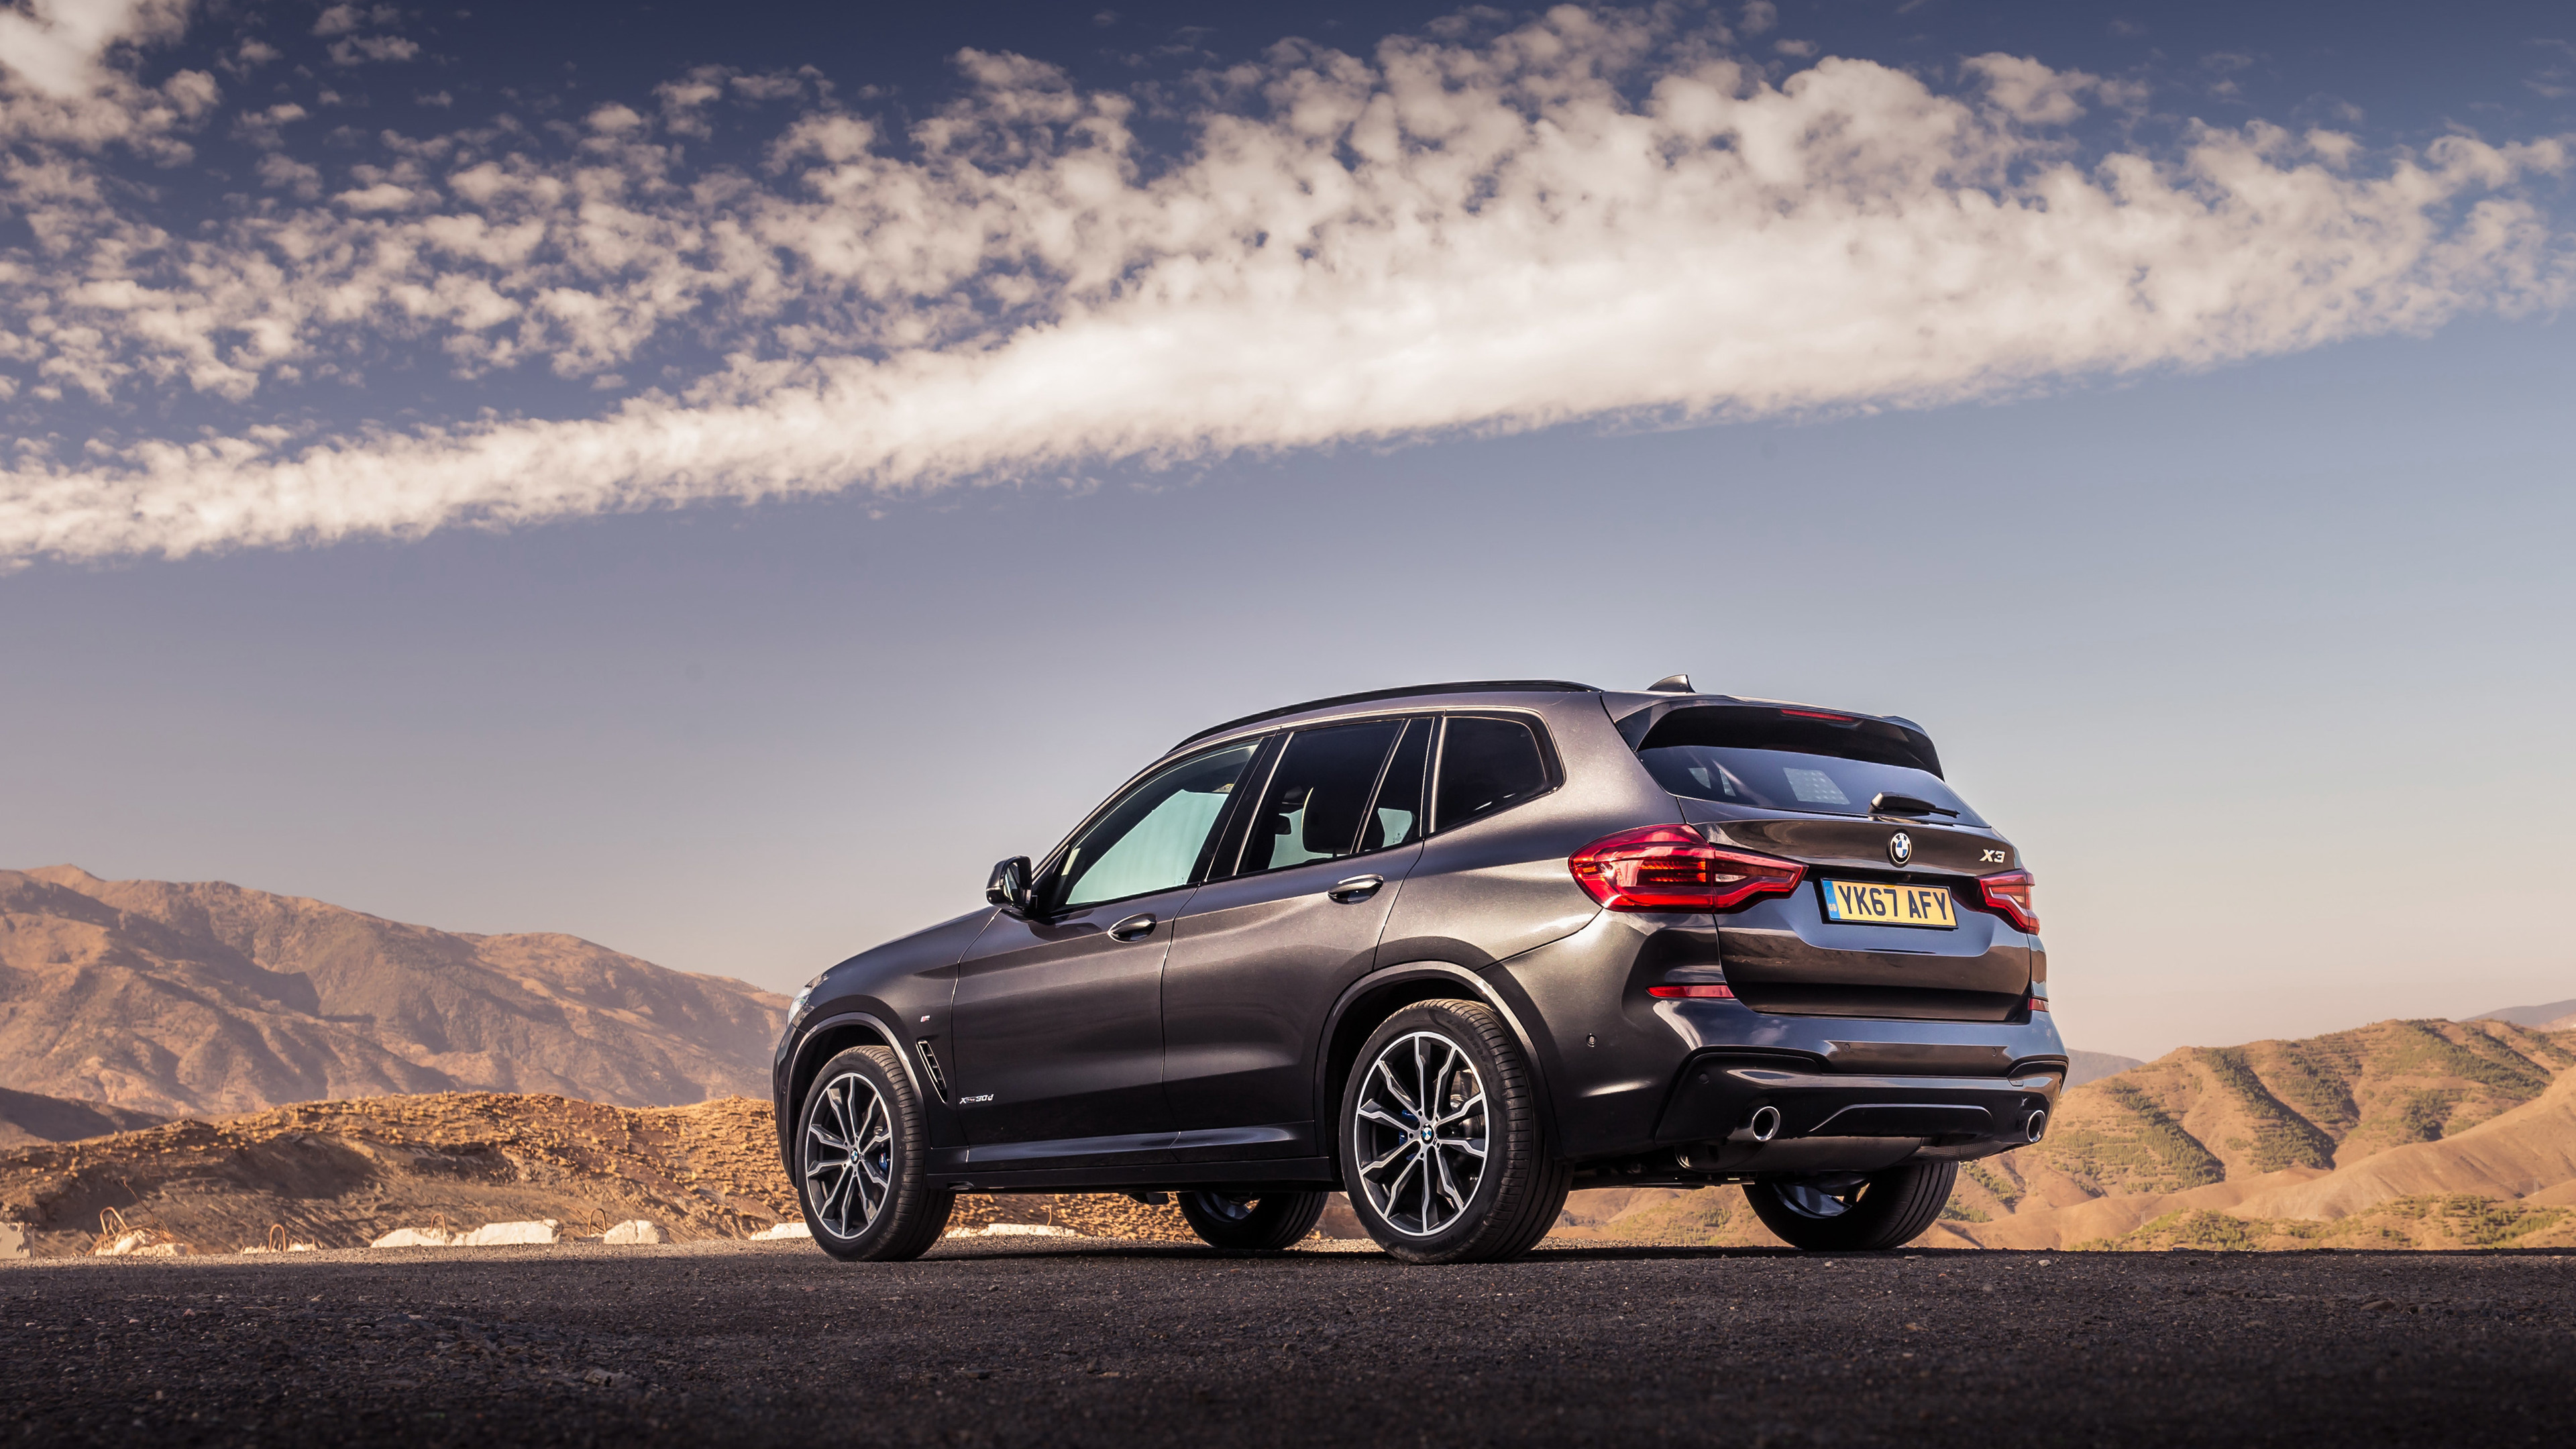 bmw x3 xdrive30d m sport 2017 rear 1539107846 - BMW X3 XDrive30d M Sport 2017 Rear - hd-wallpapers, cars wallpapers, bmw x3 wallpapers, bmw wallpapers, 4k-wallpapers, 2017 cars wallpapers